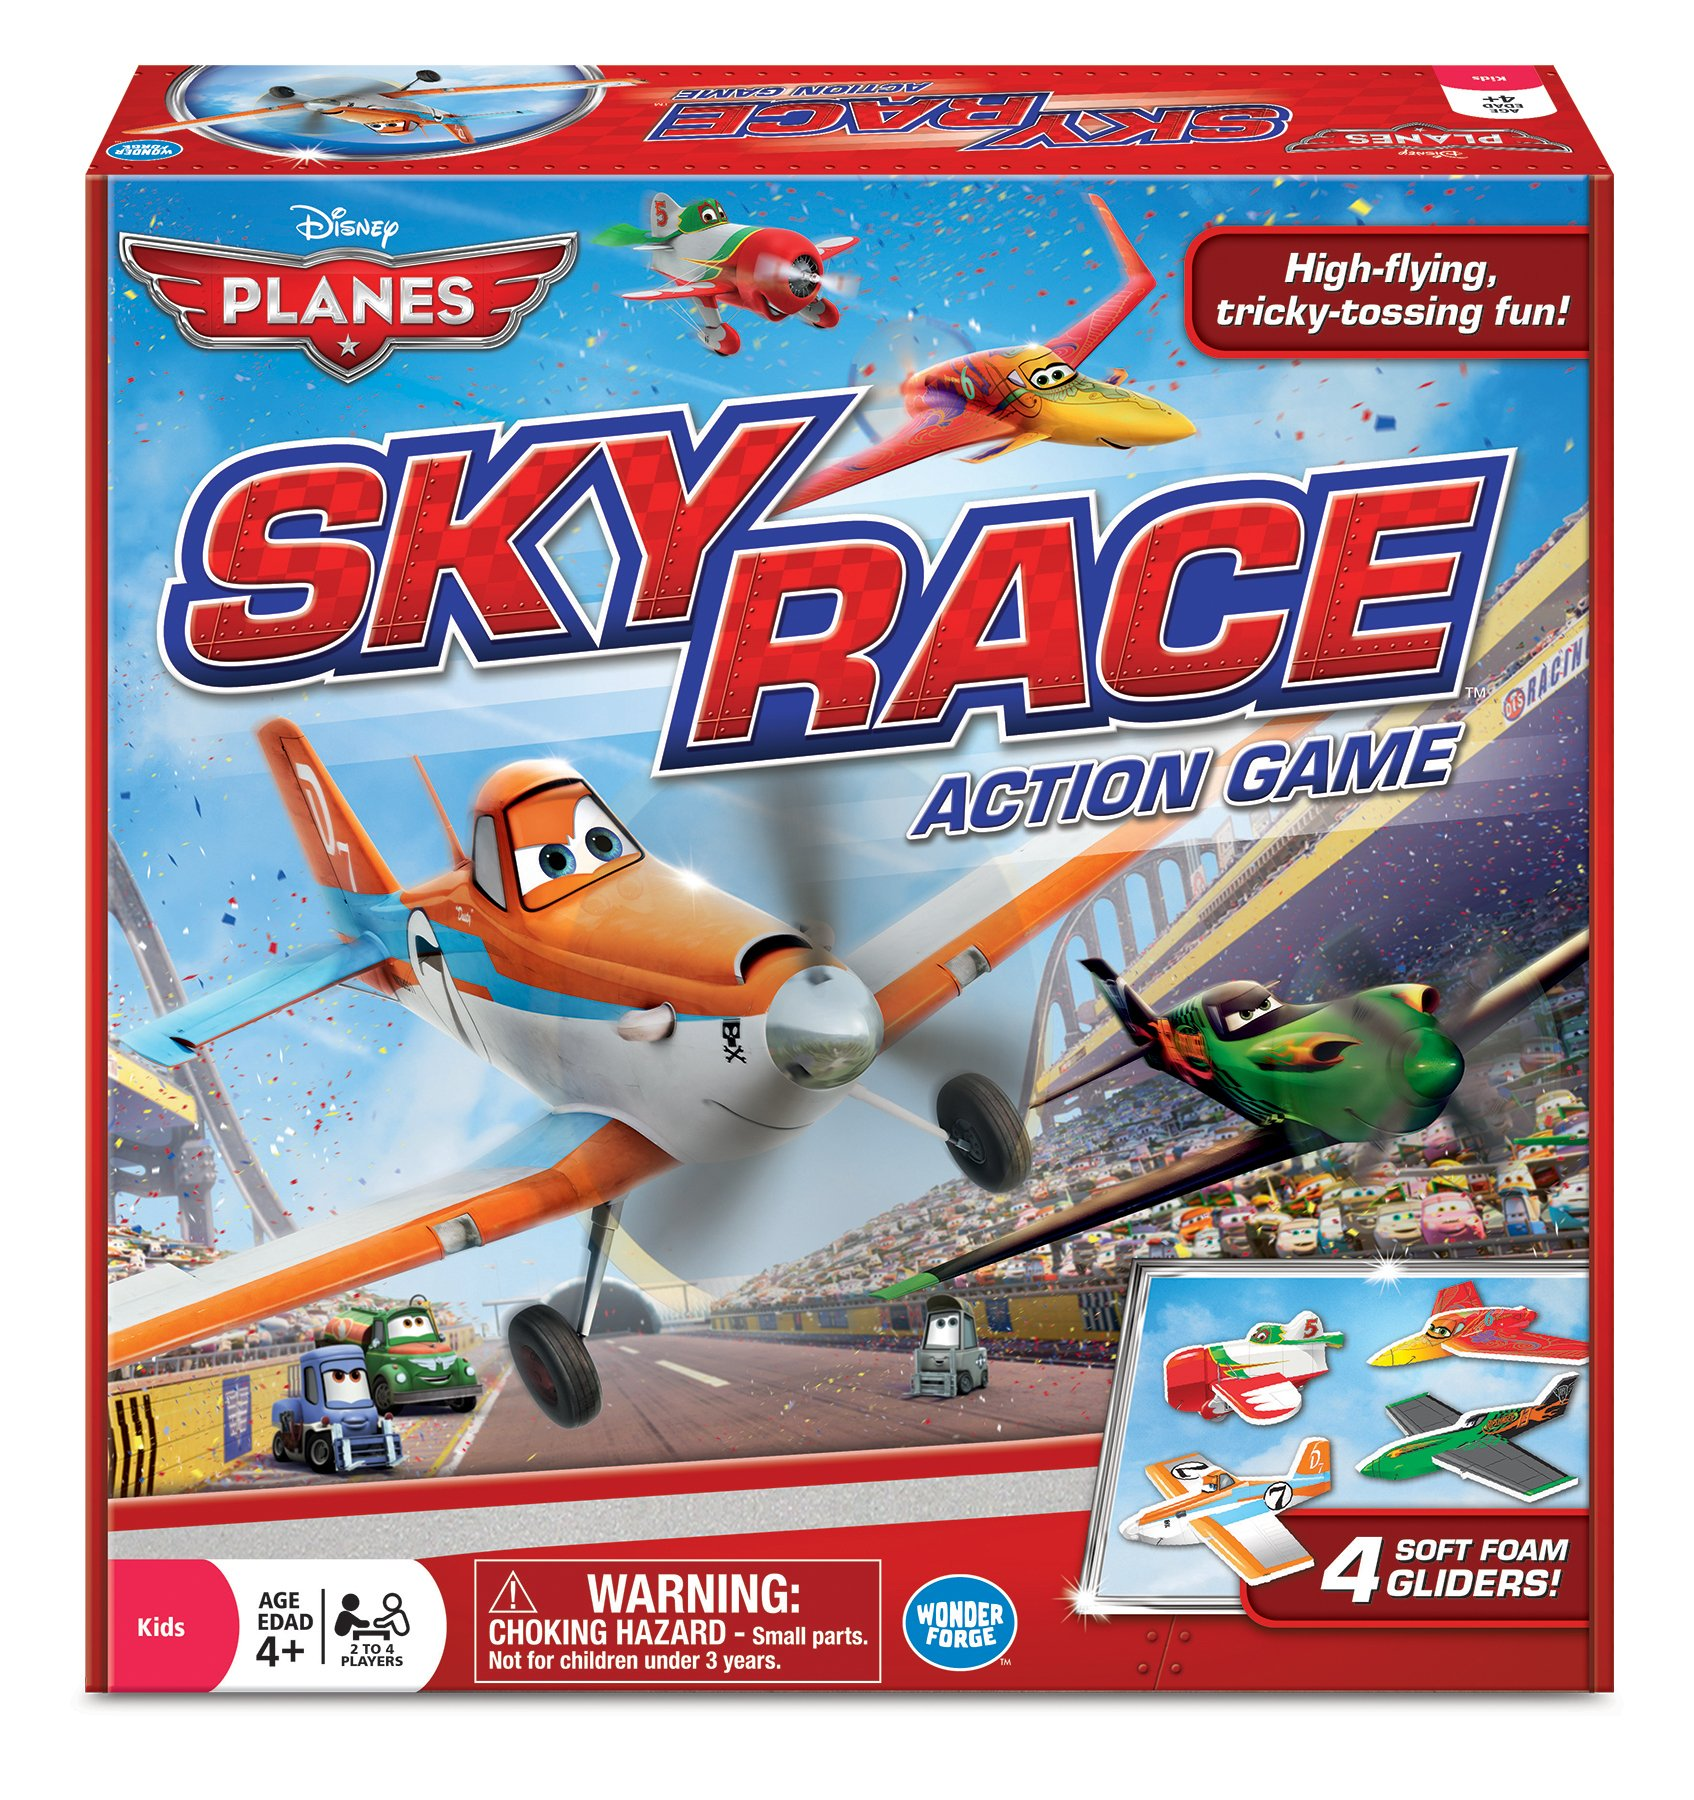 Disney Planes Sky Race Game, Red by The Wonder Forge (Image #1)